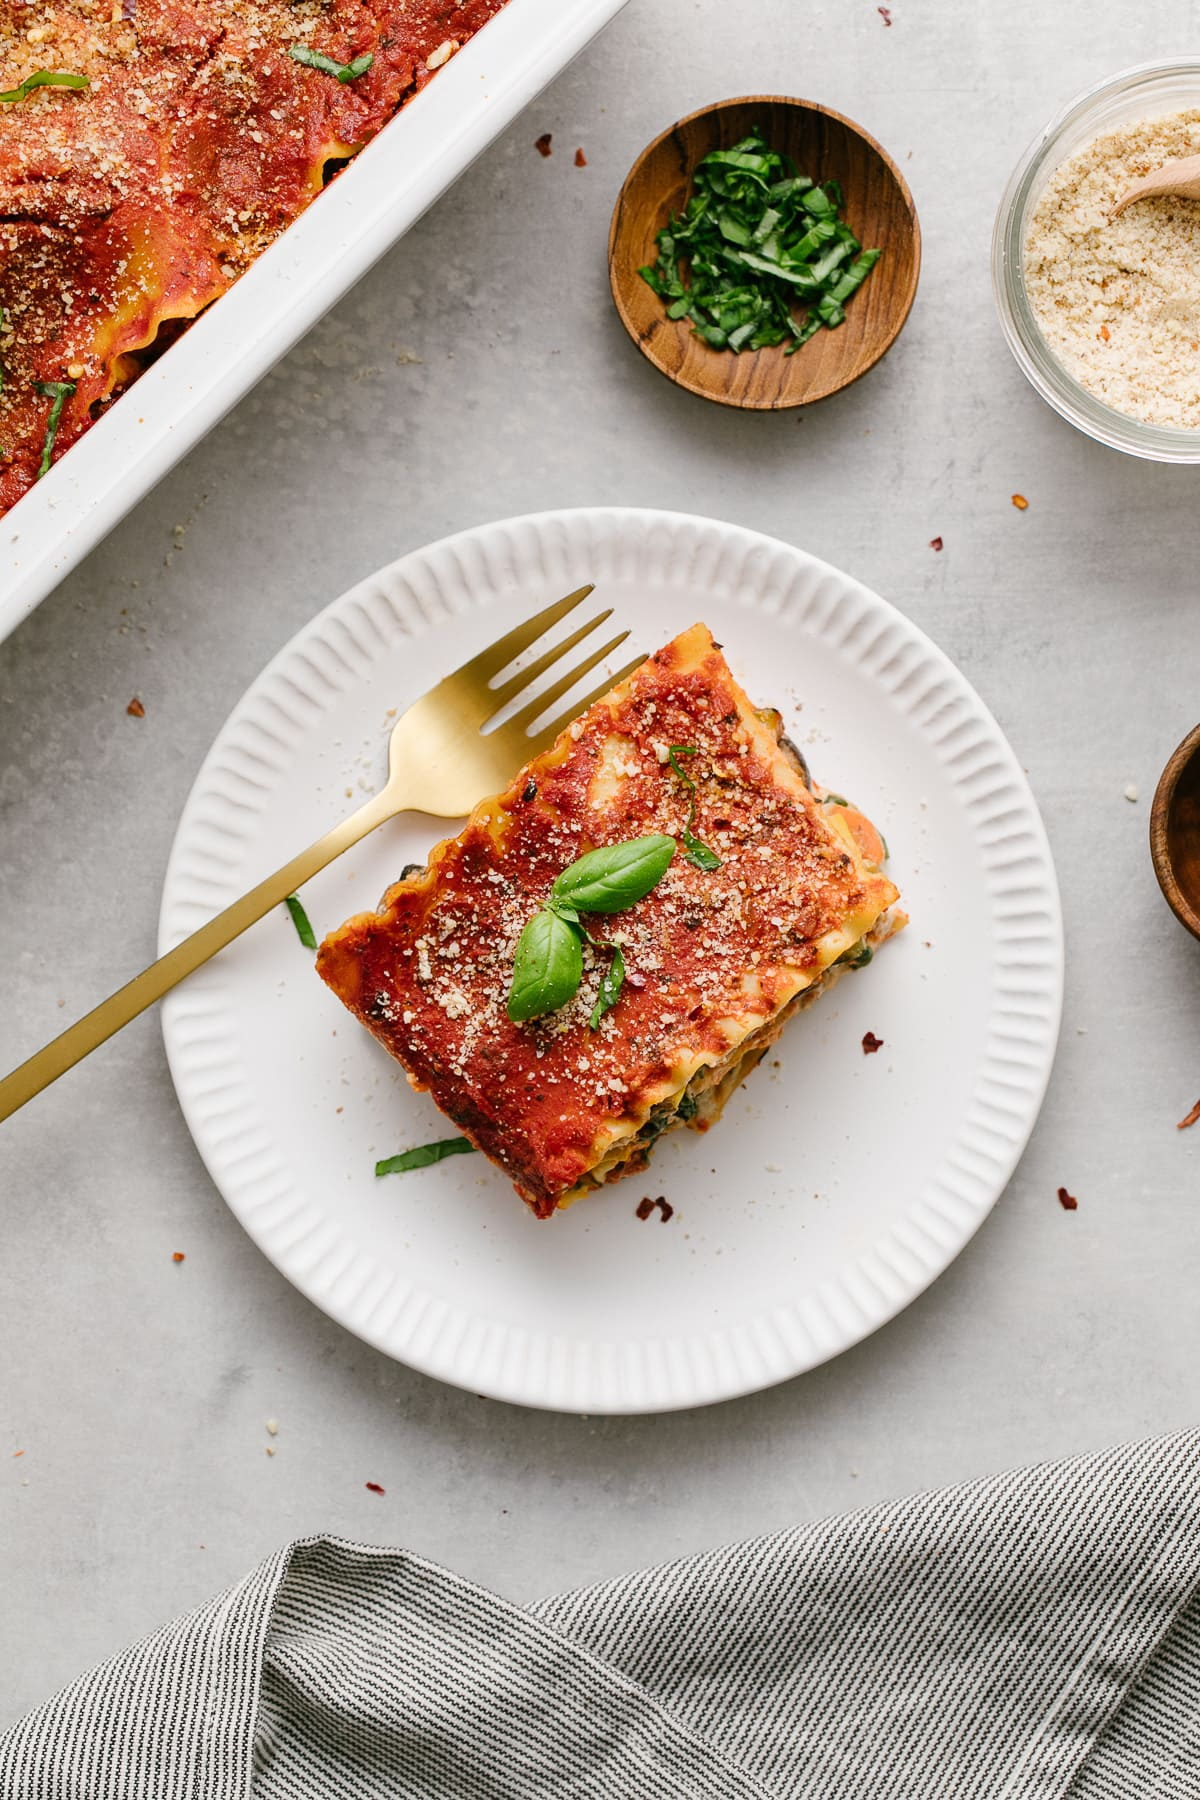 top down view of vegetable vegan lasagna on a white plate with fork and items surrounding.